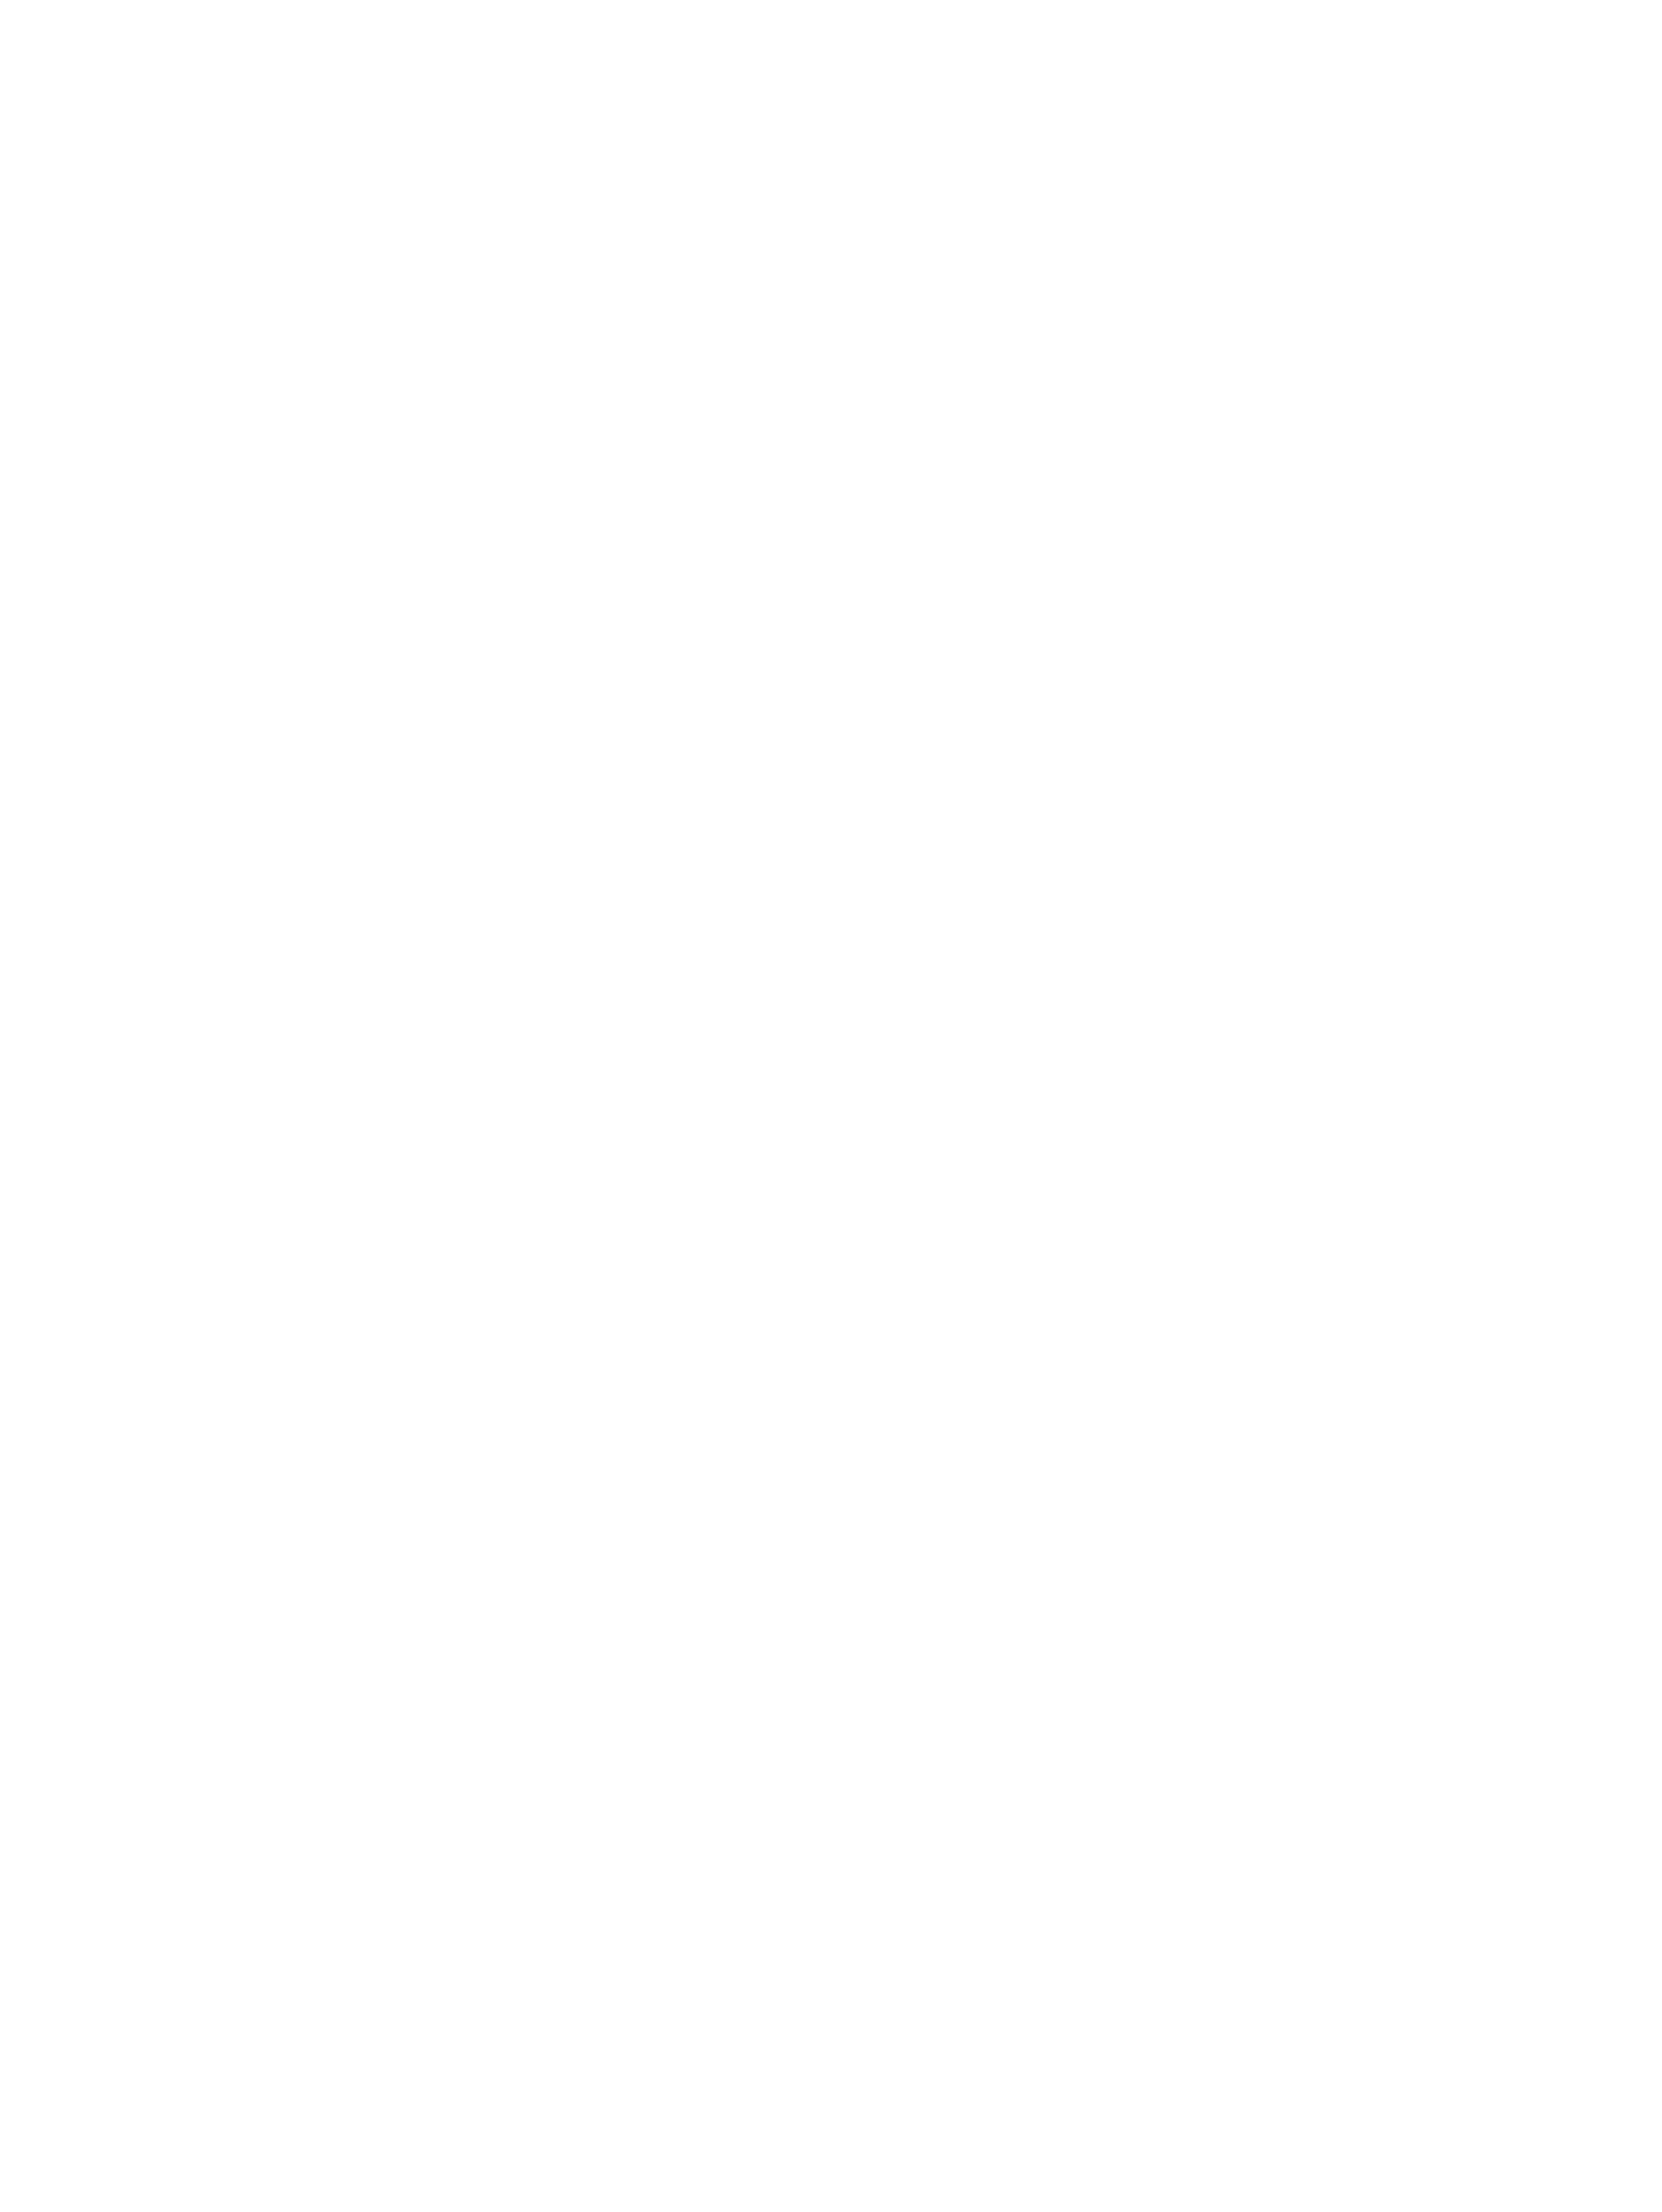 Orphans of Dusk (logo)